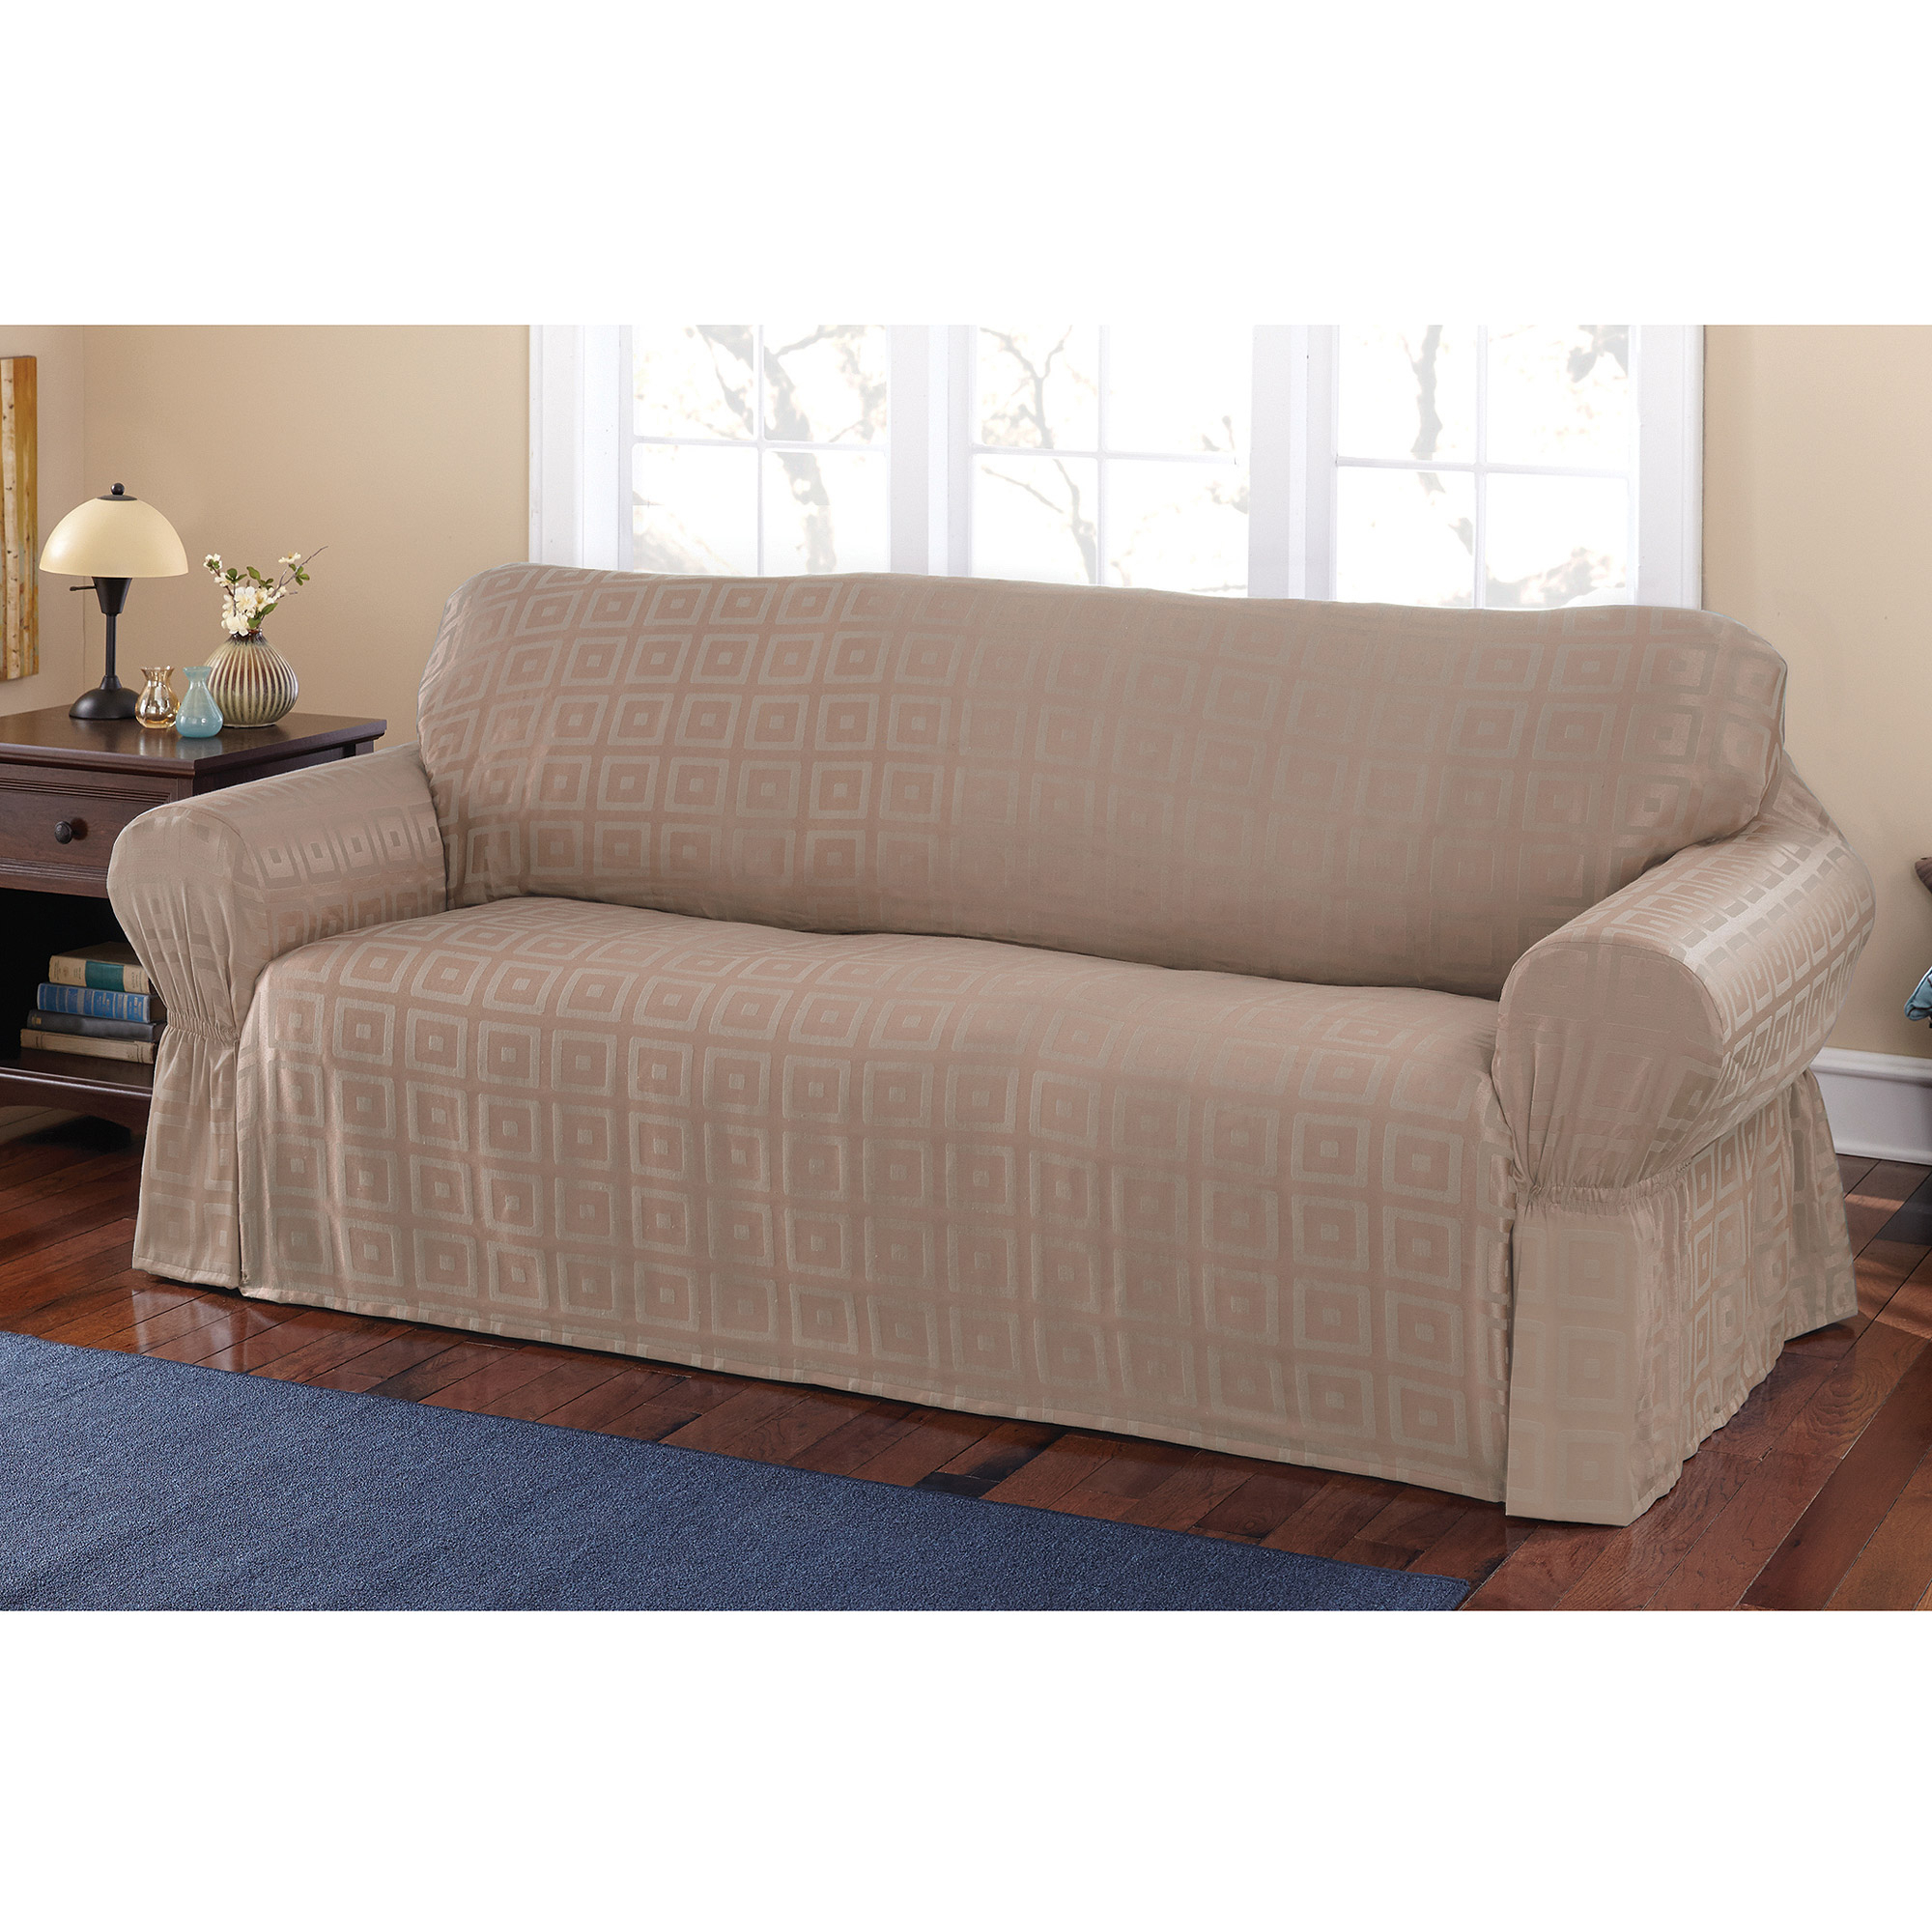 Most Up To Date Slipcovers For Chairs And Sofas Regarding Mainstays Sherwood Slipcover Sofa – Walmart (View 3 of 20)